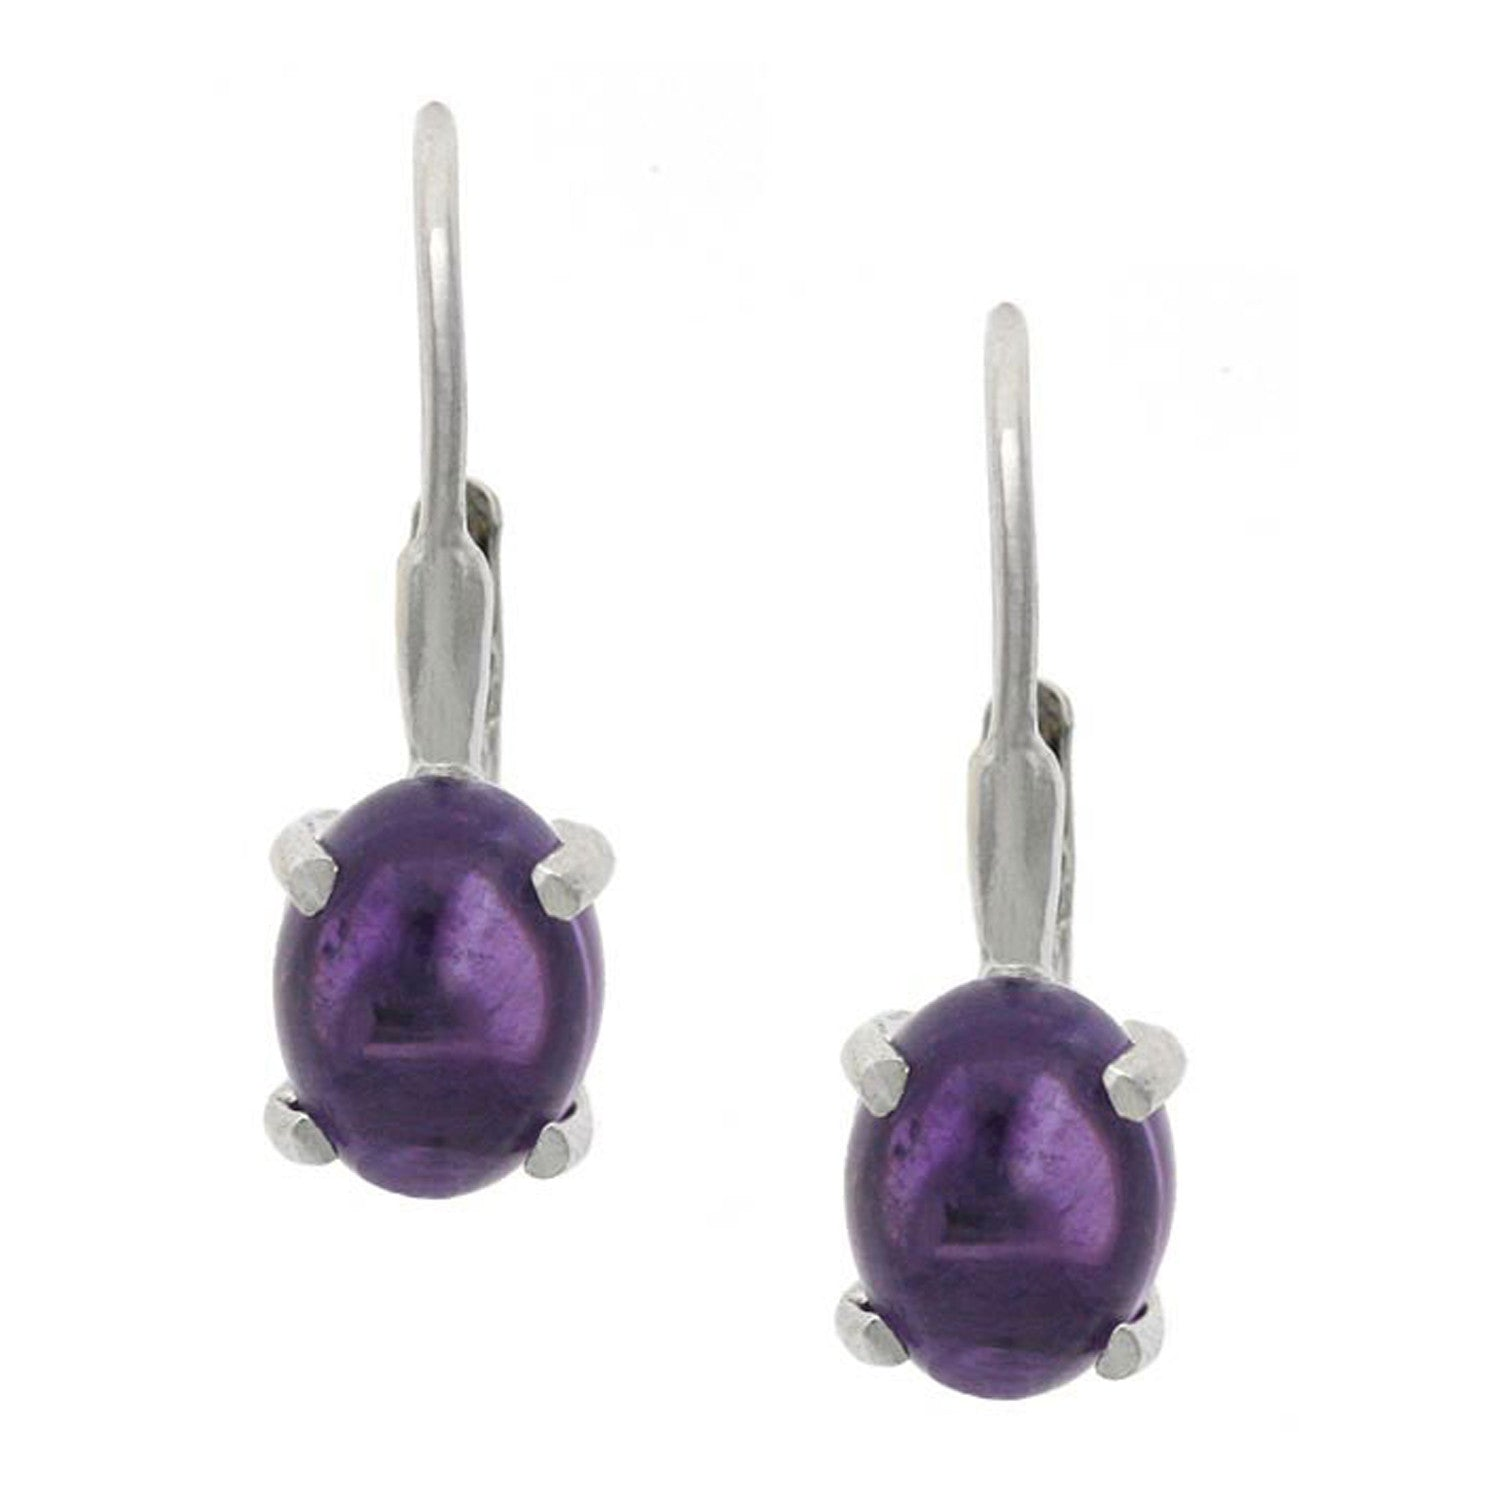 Sterling Silver Oval Gemstone Accent Leverback Earrings - Amethyst